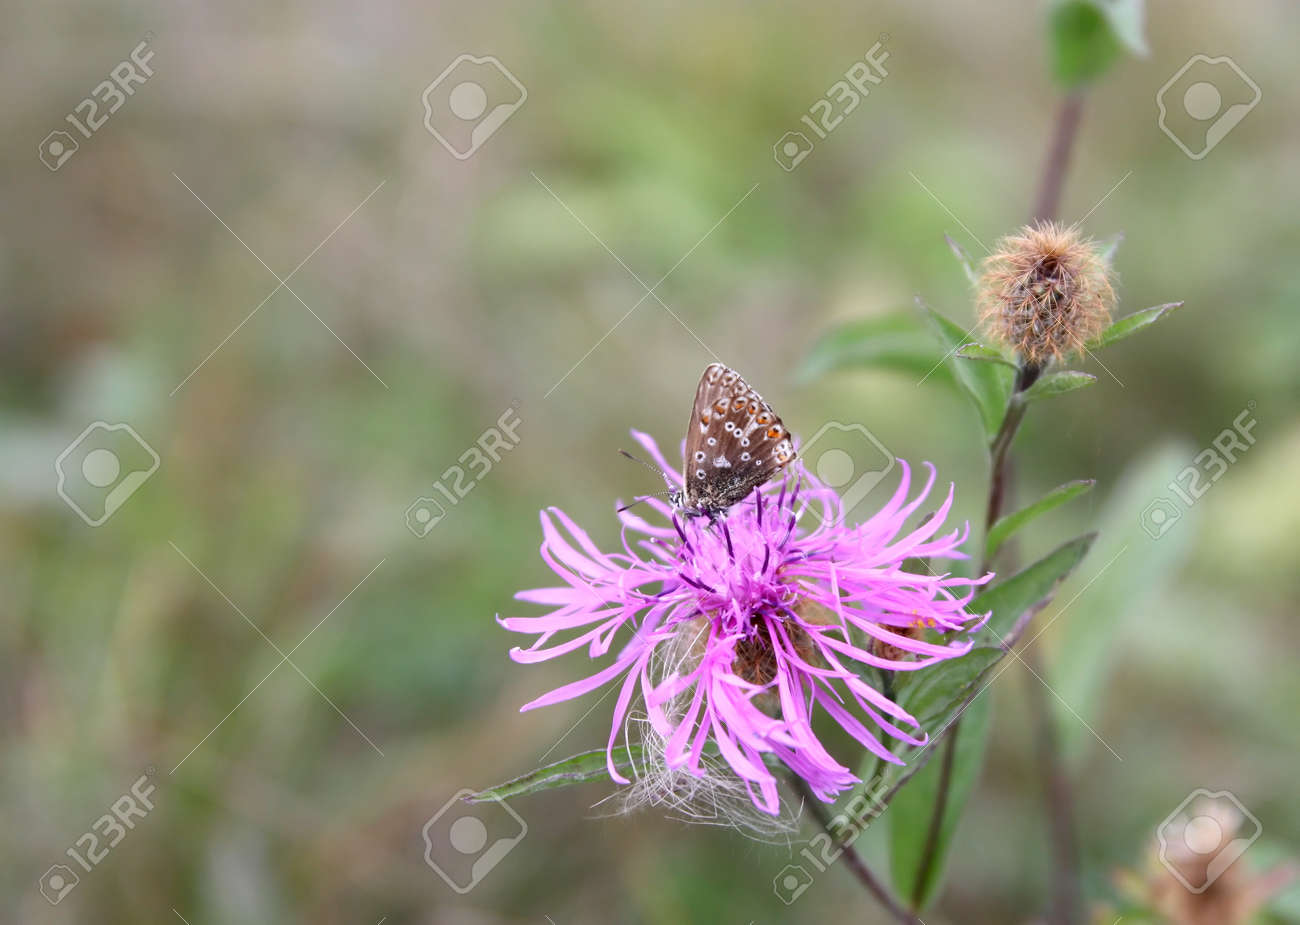 Butterfly sitting on a flower, shallow dof Stock Photo - 35711132